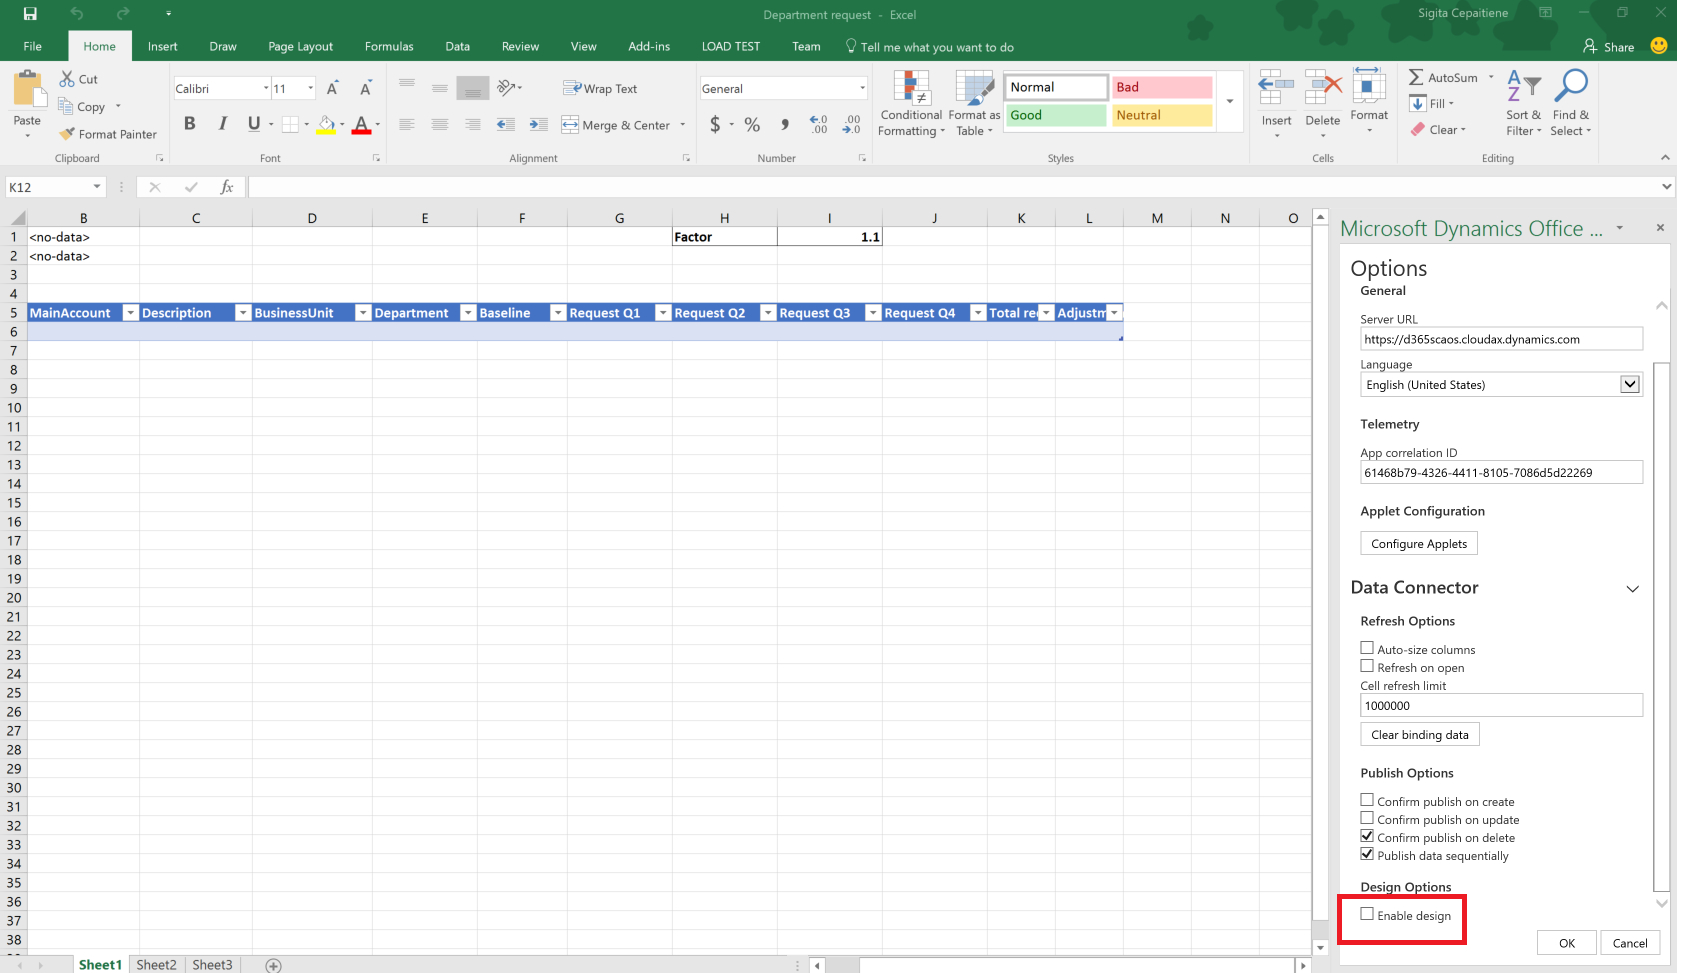 Setting Up An Excel Spreadsheet For Finances Within Budget Planning Templates For Excel  Finance  Operations